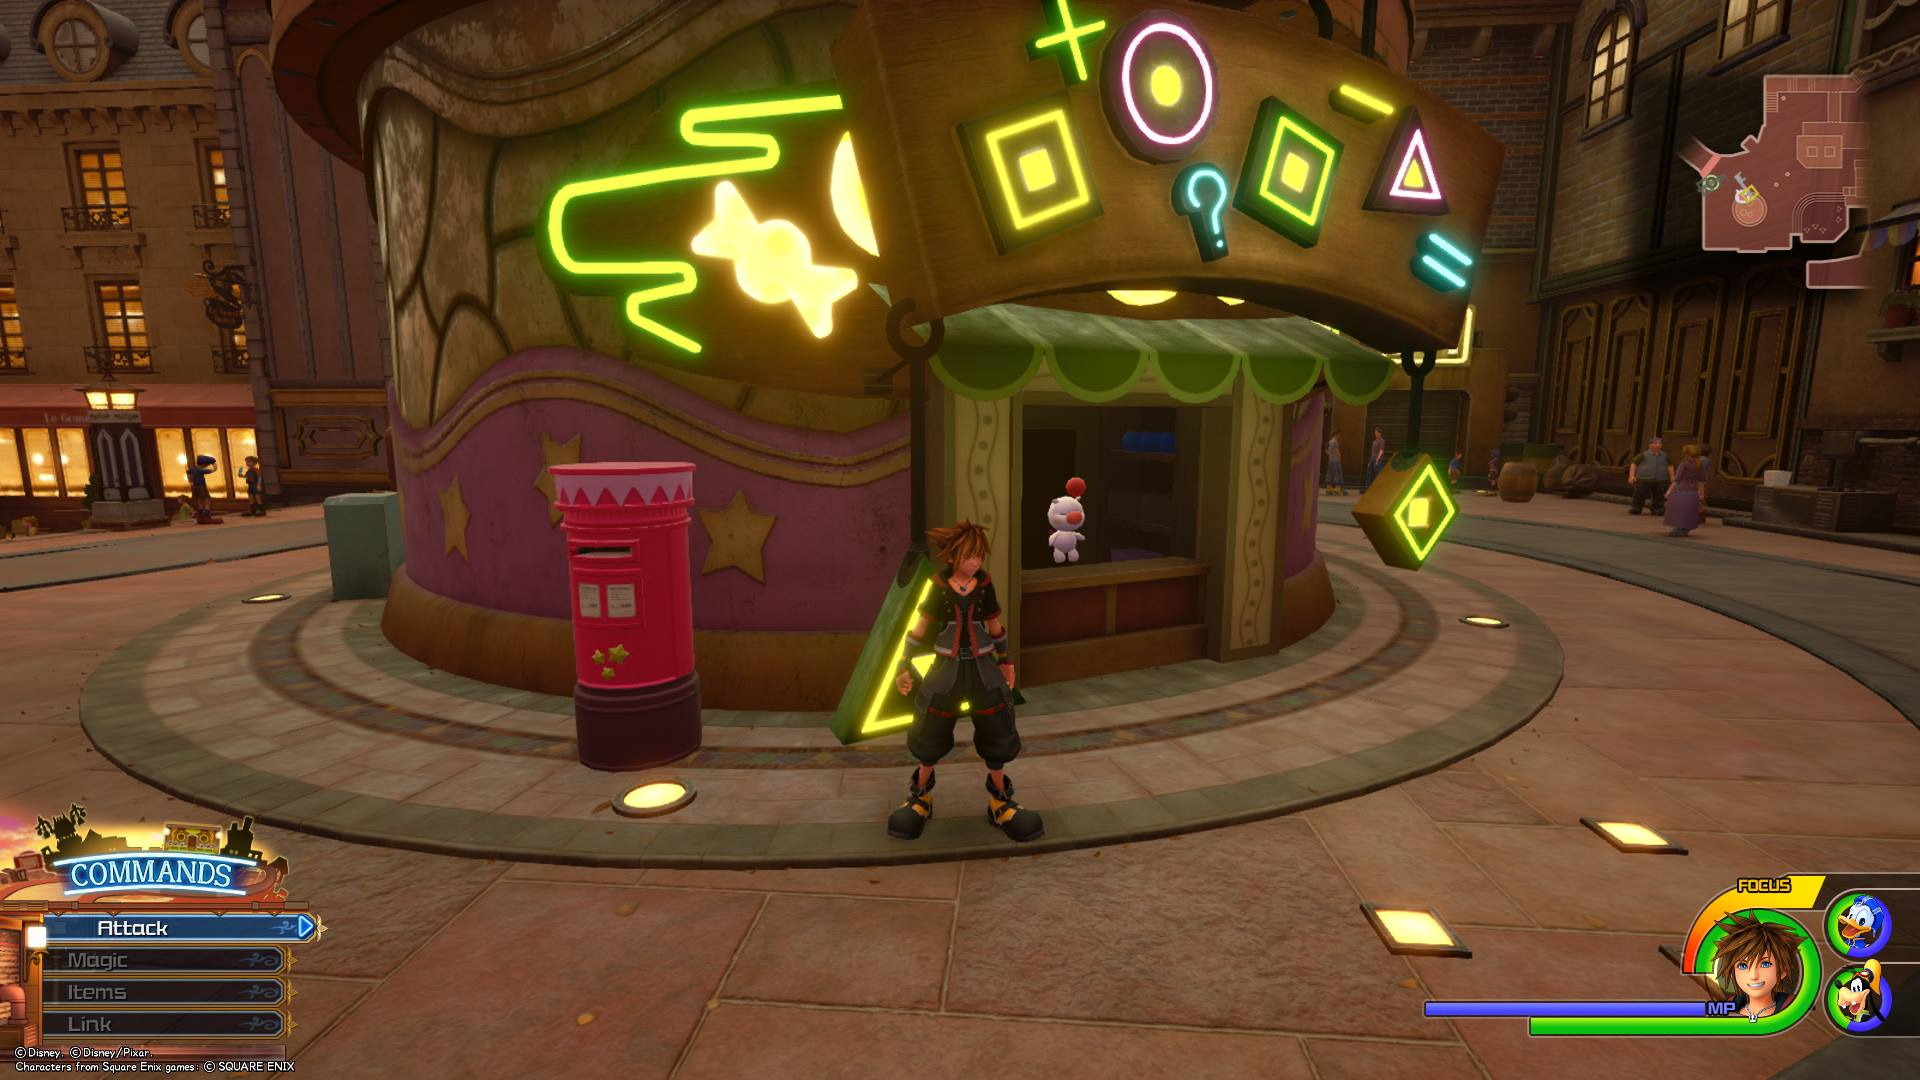 Interact with the red mailbox to the left of the Moogle Shop in Twilight Town to mail your Postcards in Kingdom Hearts 3.